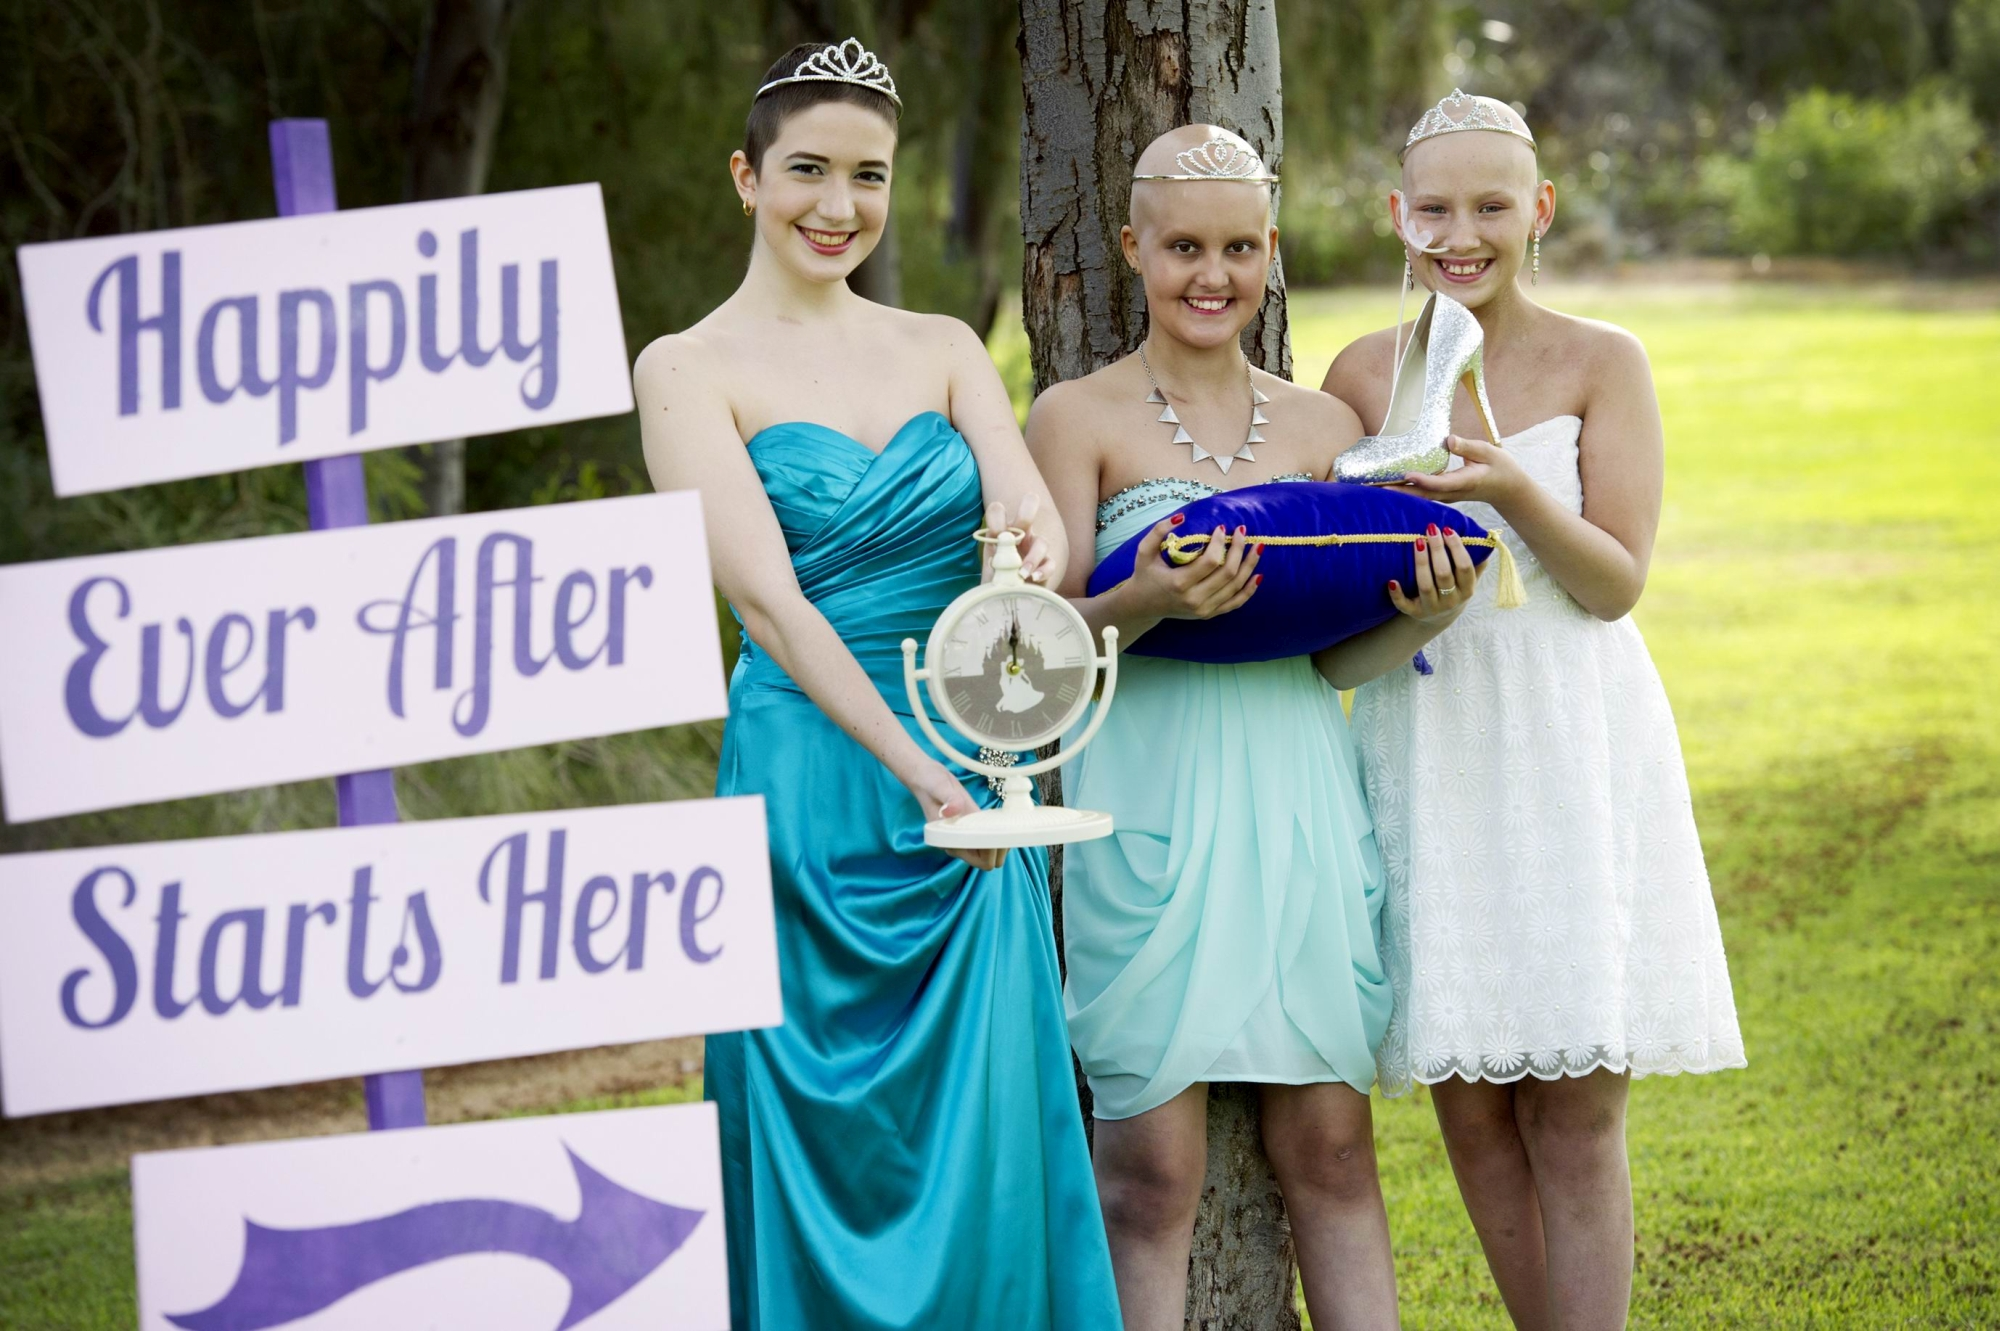 Oceane Bourgault, Chloe Clements and Caitlin Garrett are ready for the Glass Slipper Ball. Picture: Emma Reeves d419793